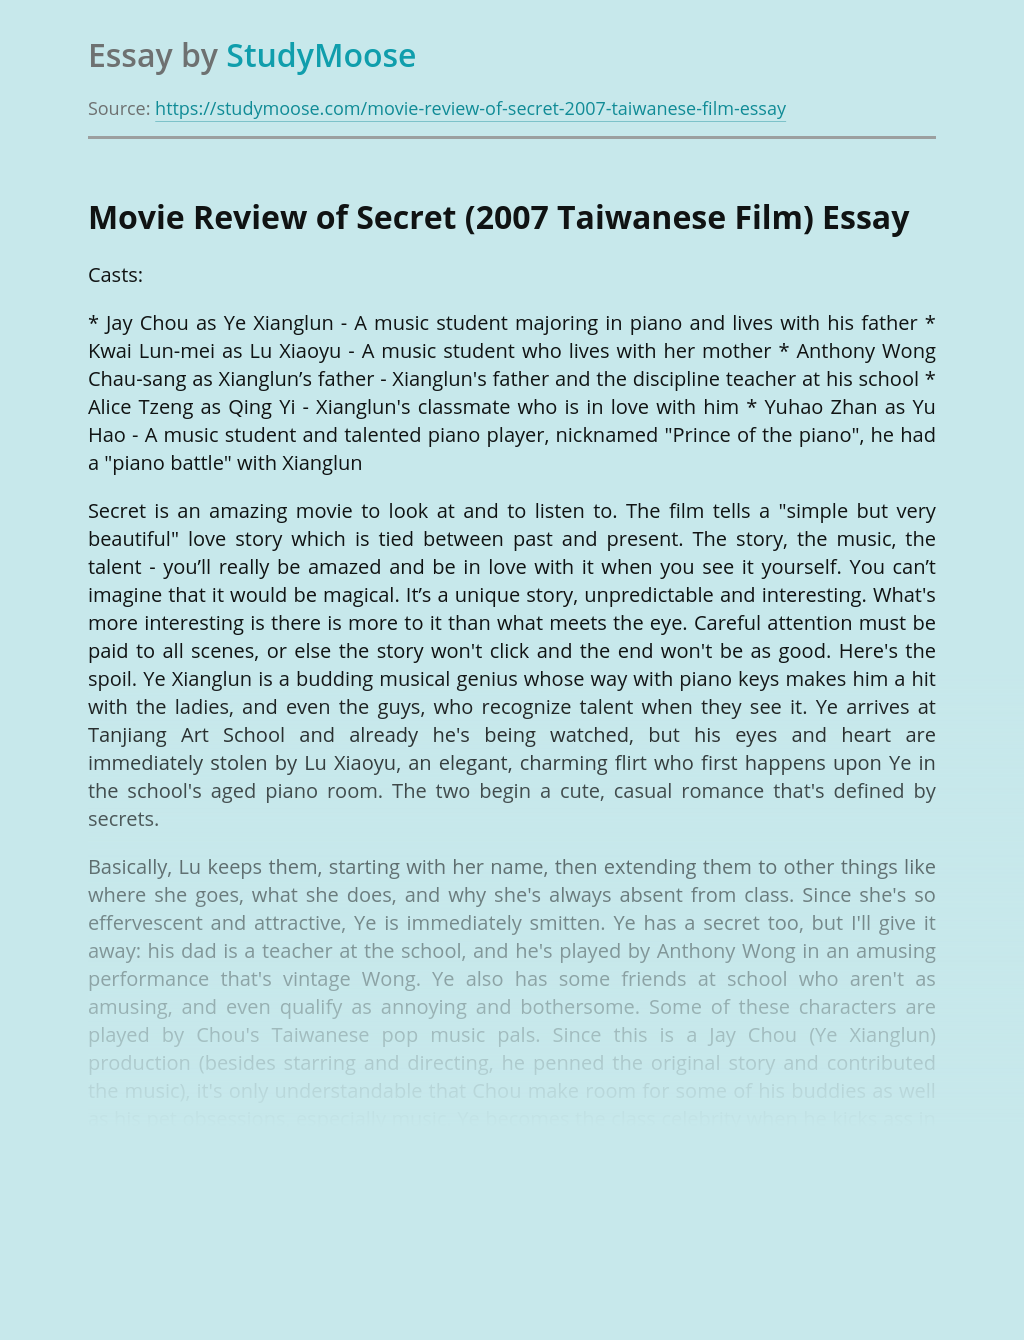 Movie Review of Secret (2007 Taiwanese Film)